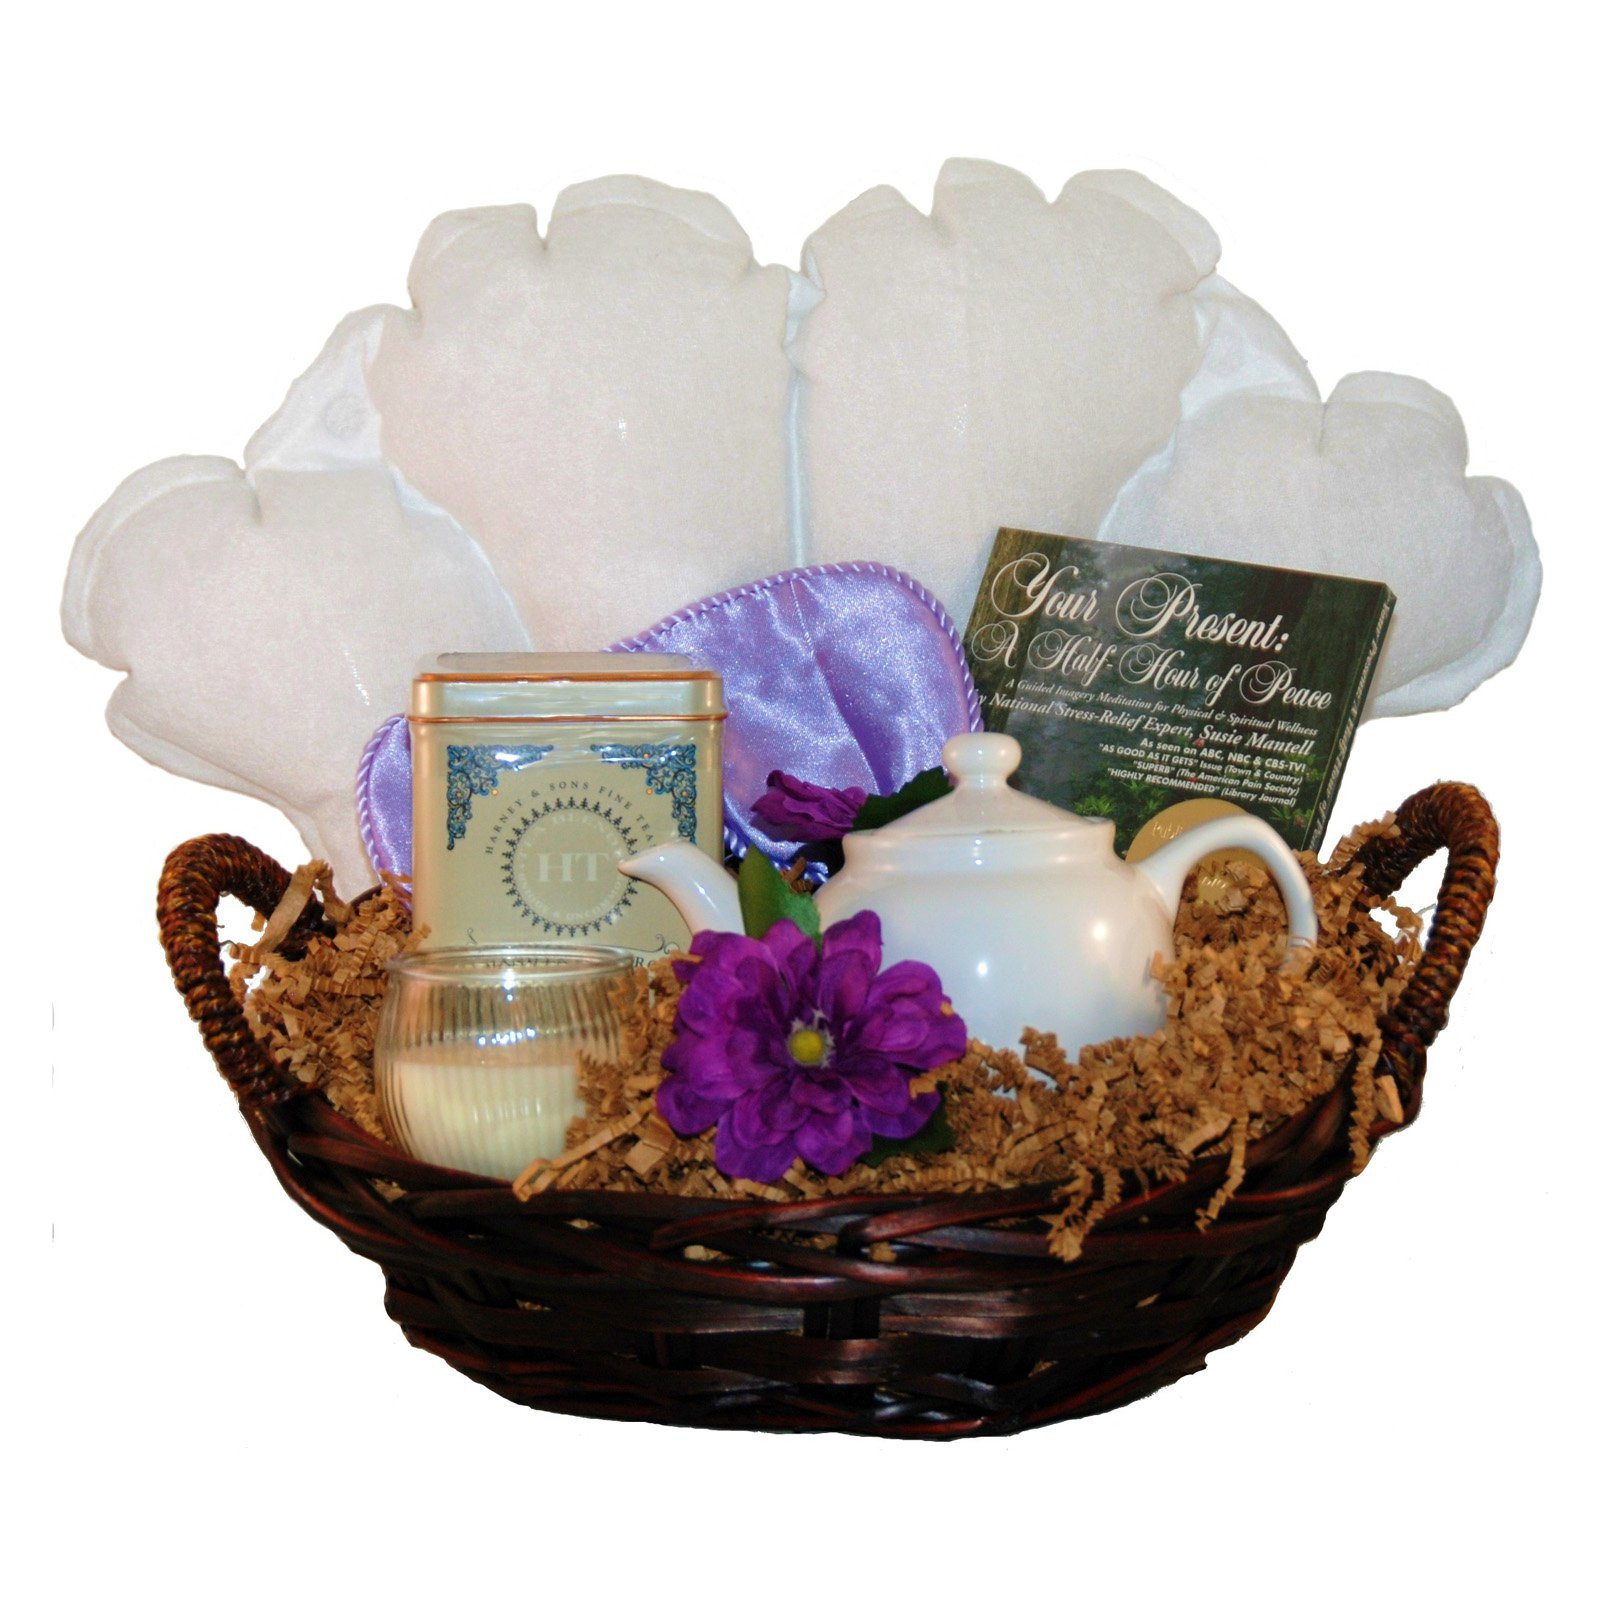 Best ideas about Relaxation Gift Basket Ideas . Save or Pin Peaceful Moments Relaxation Gift Basket at Hayneedle Now.